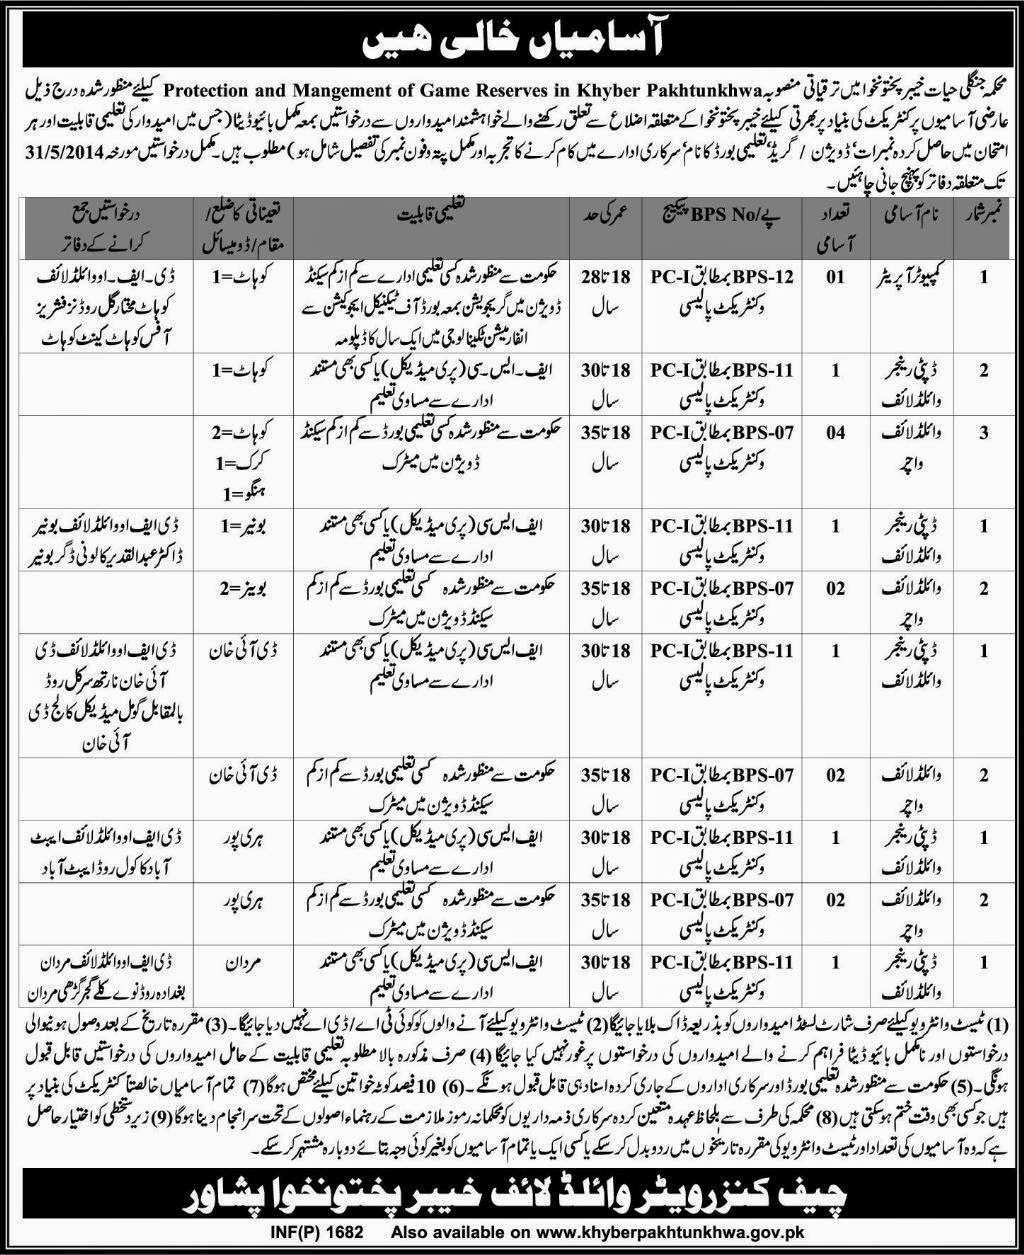 Managers and Computer Operator Jobs in Protection and Management of Game Reserves, KPK